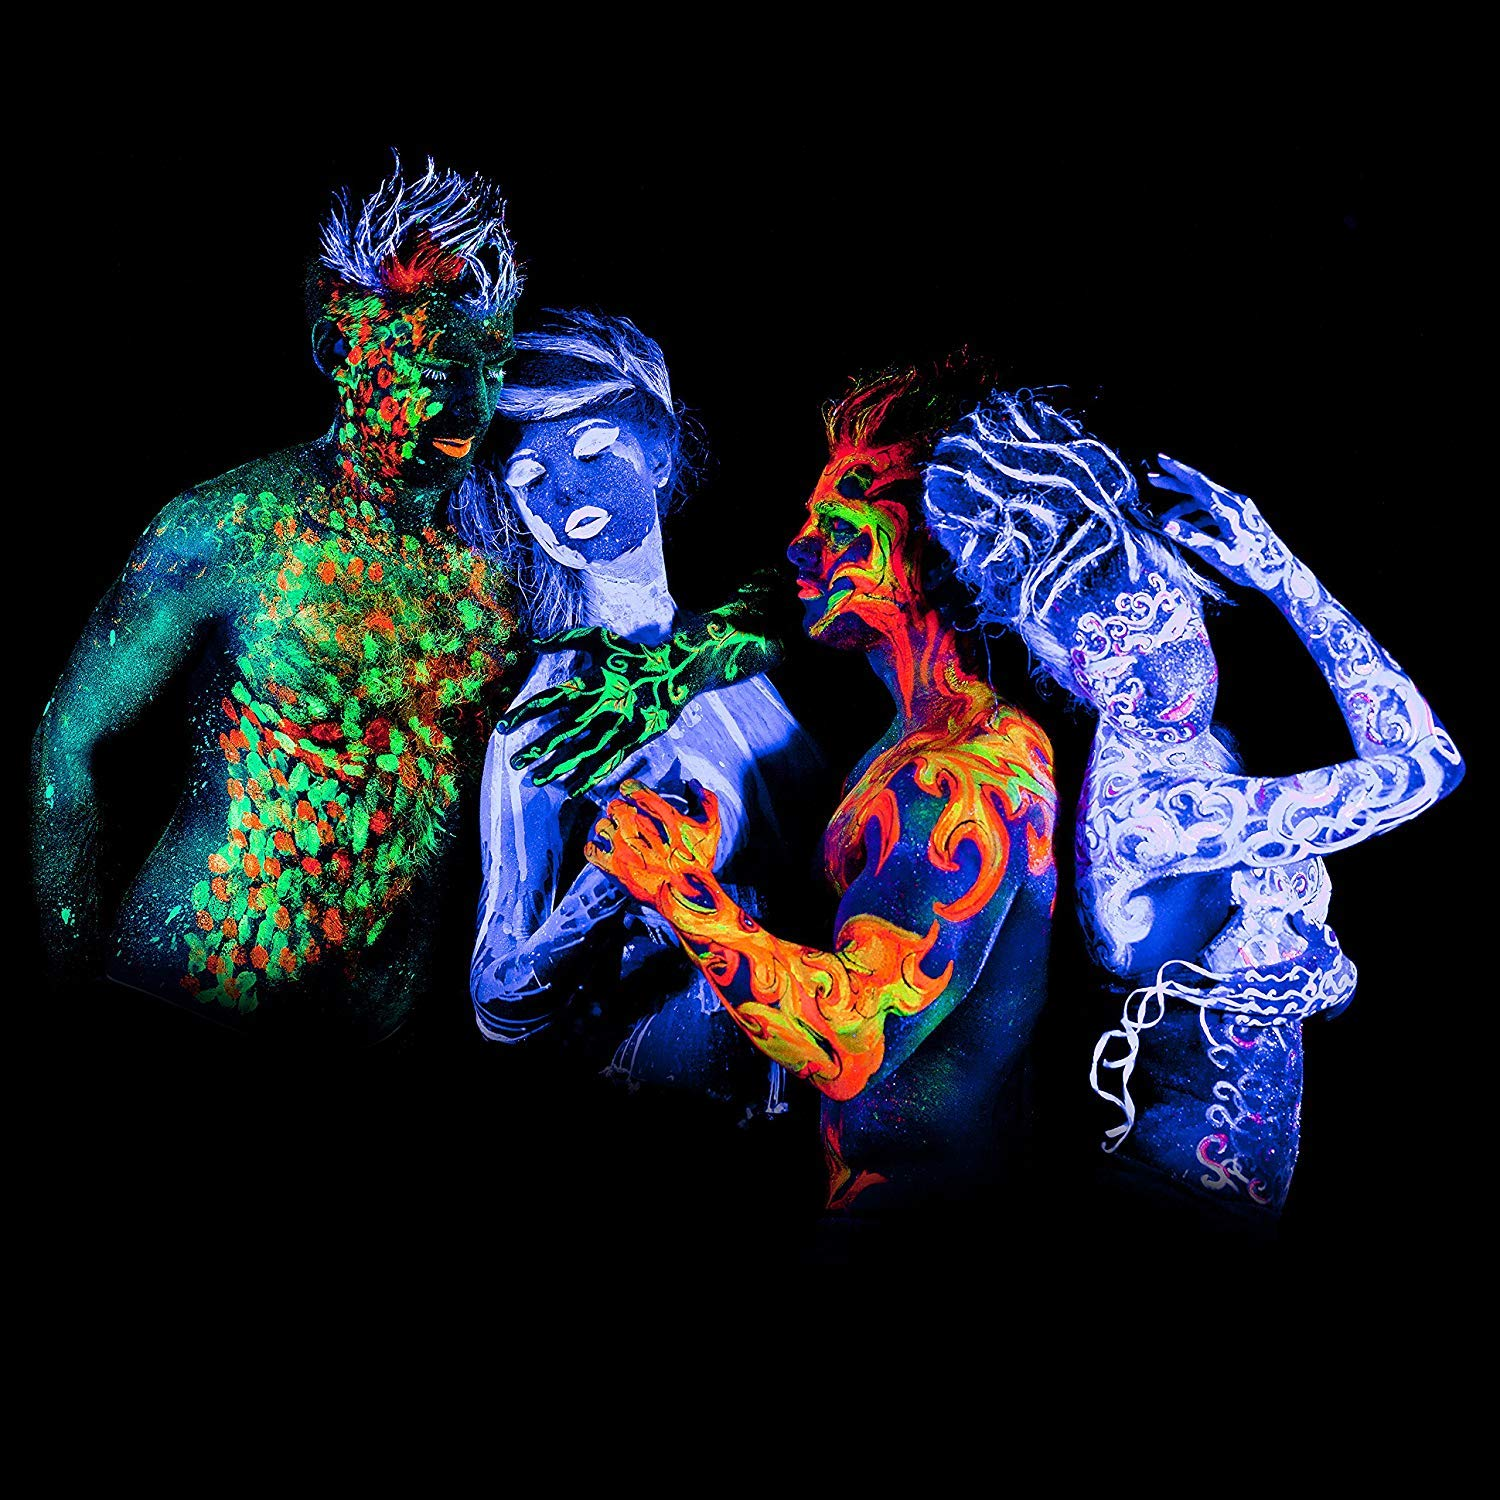 'XXL Set' 24 Cans of Neon Body Paints by neon nights - 16.5 fl oz of Luminescent Body Paints - Long-Lasting Neon Body Paints for Blacklights, UV Lights - Fluorescent Body Paints for Adults by neon nights (Image #4)